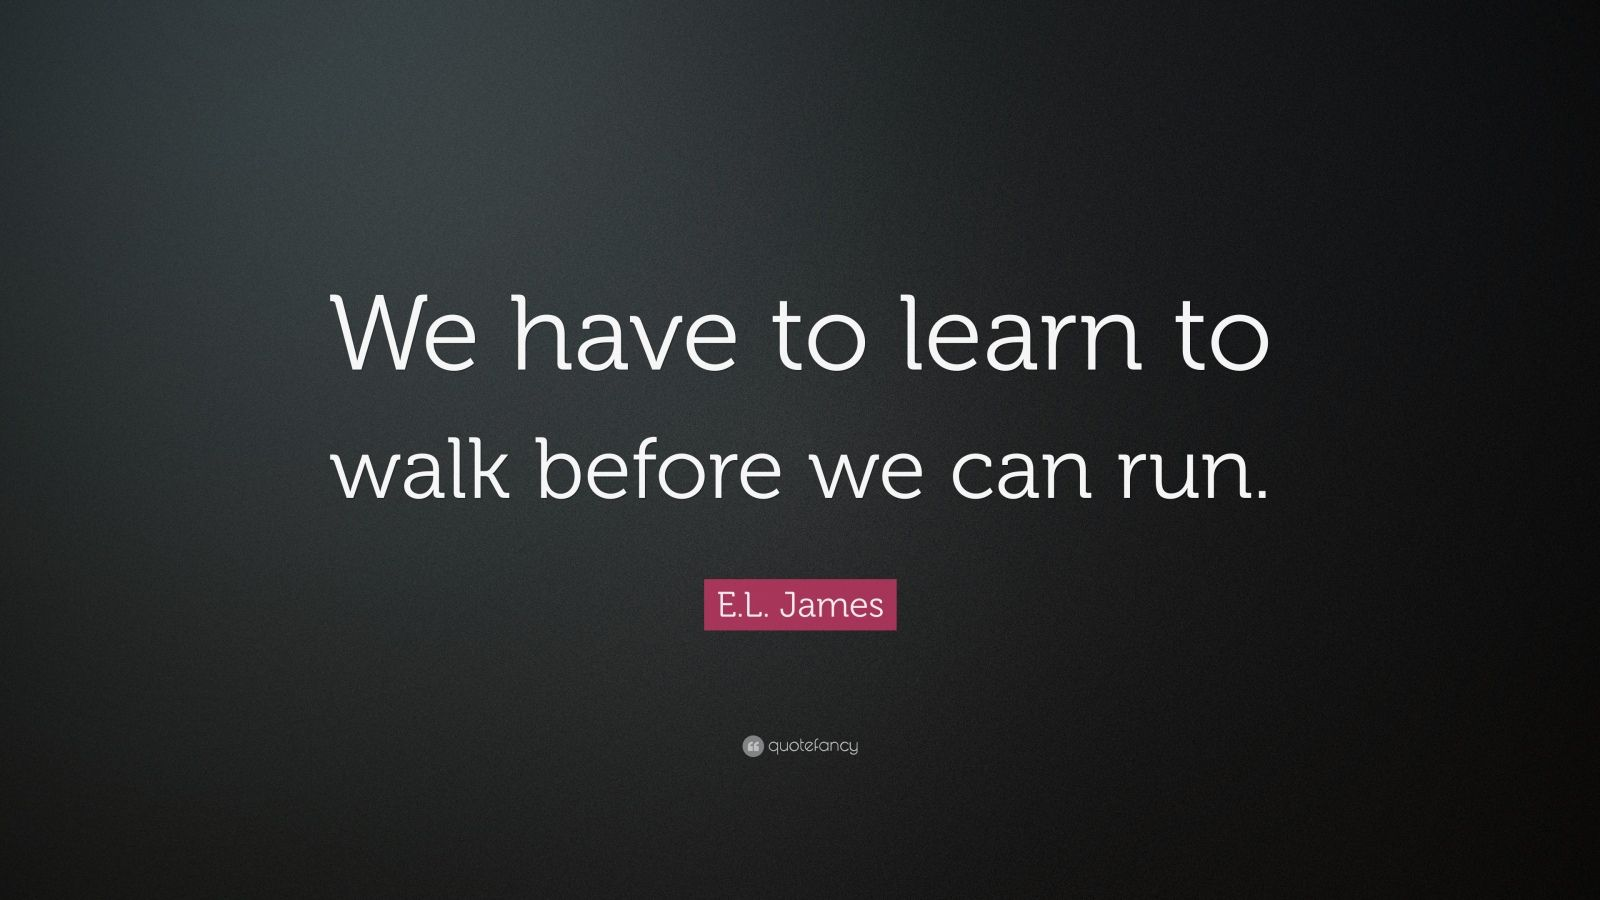 """once we learn to walk in """"you can walk away and say we don't need this but something in your eyes says we can beat this"""" not once more not ever forgive walk away and live on."""